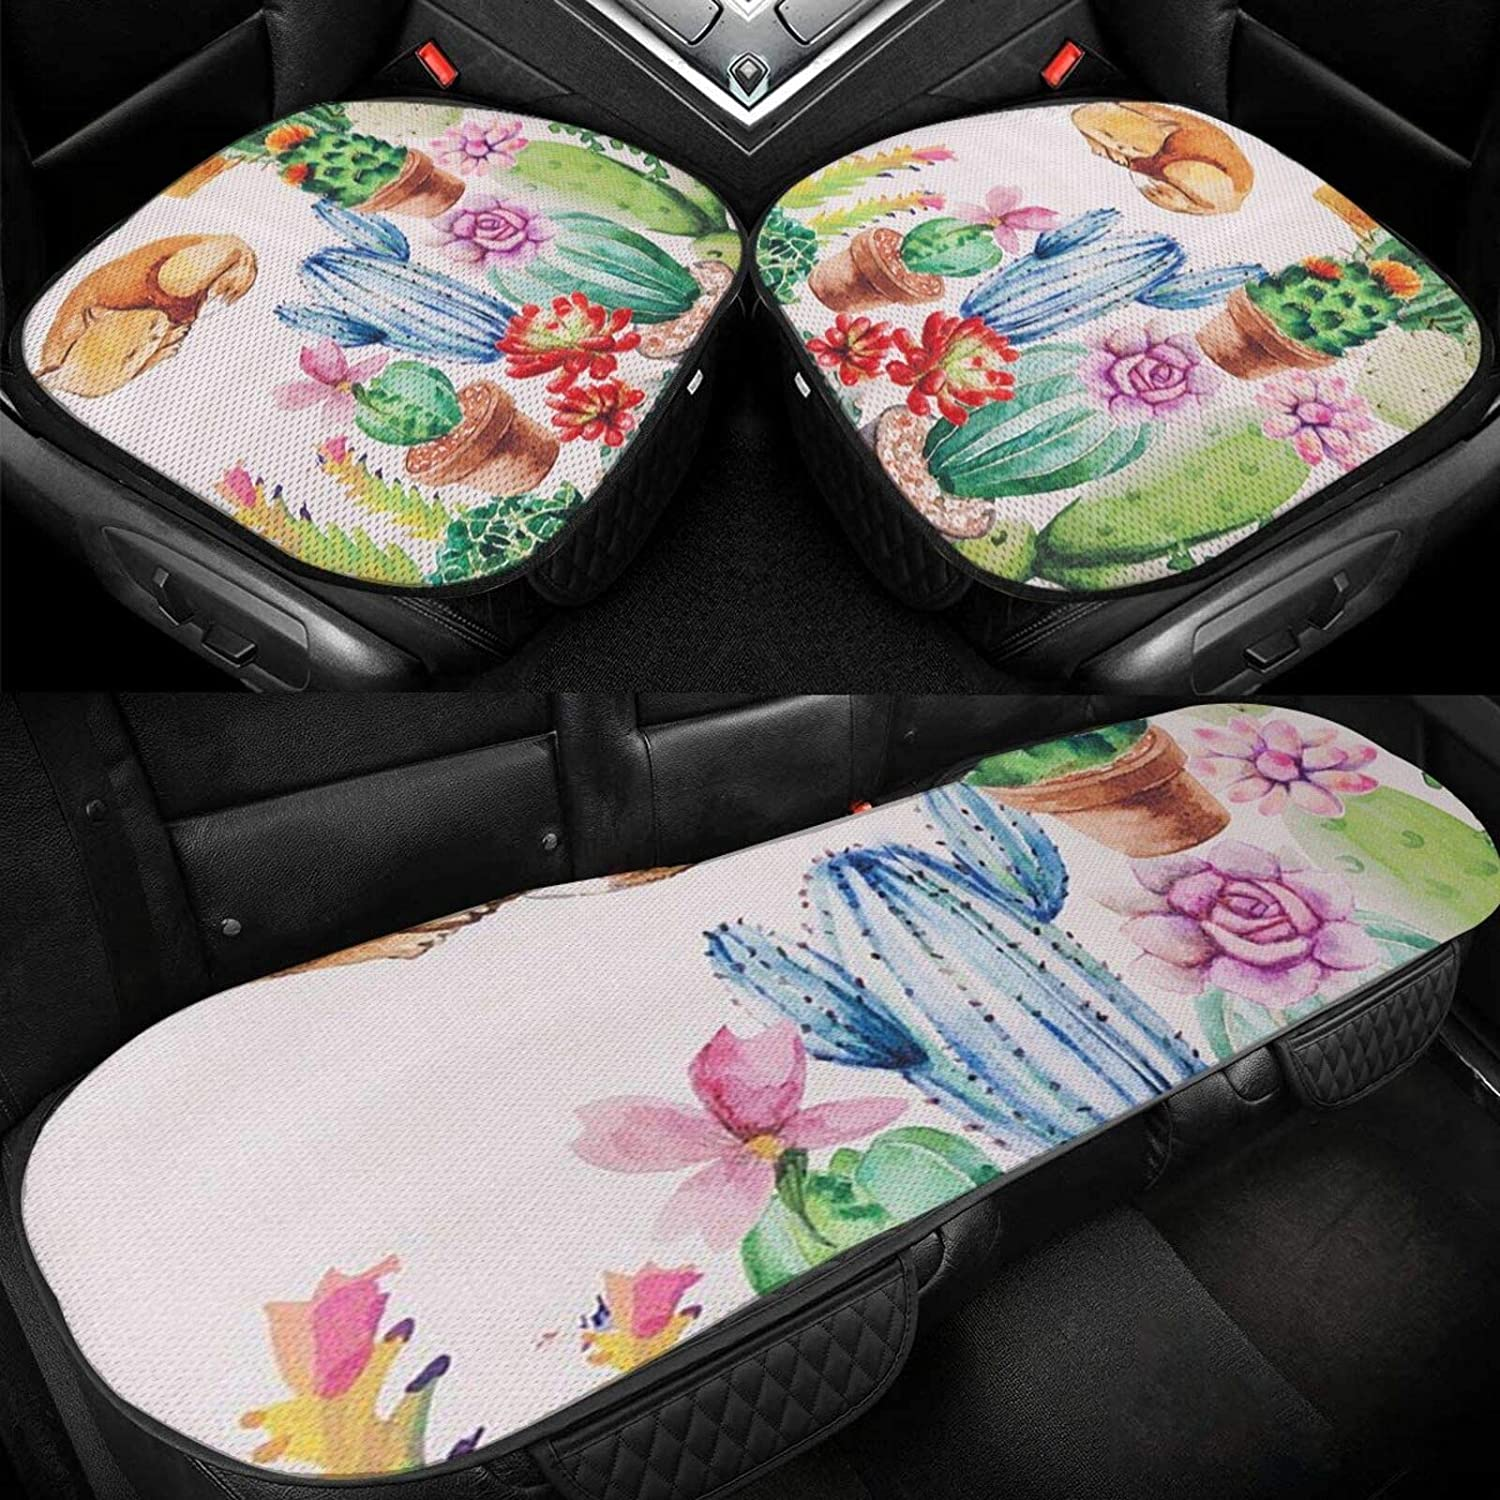 Car Seat Cushion Covers Cute Bott Cat and Max 80% It is very popular OFF Watercolor Cactus